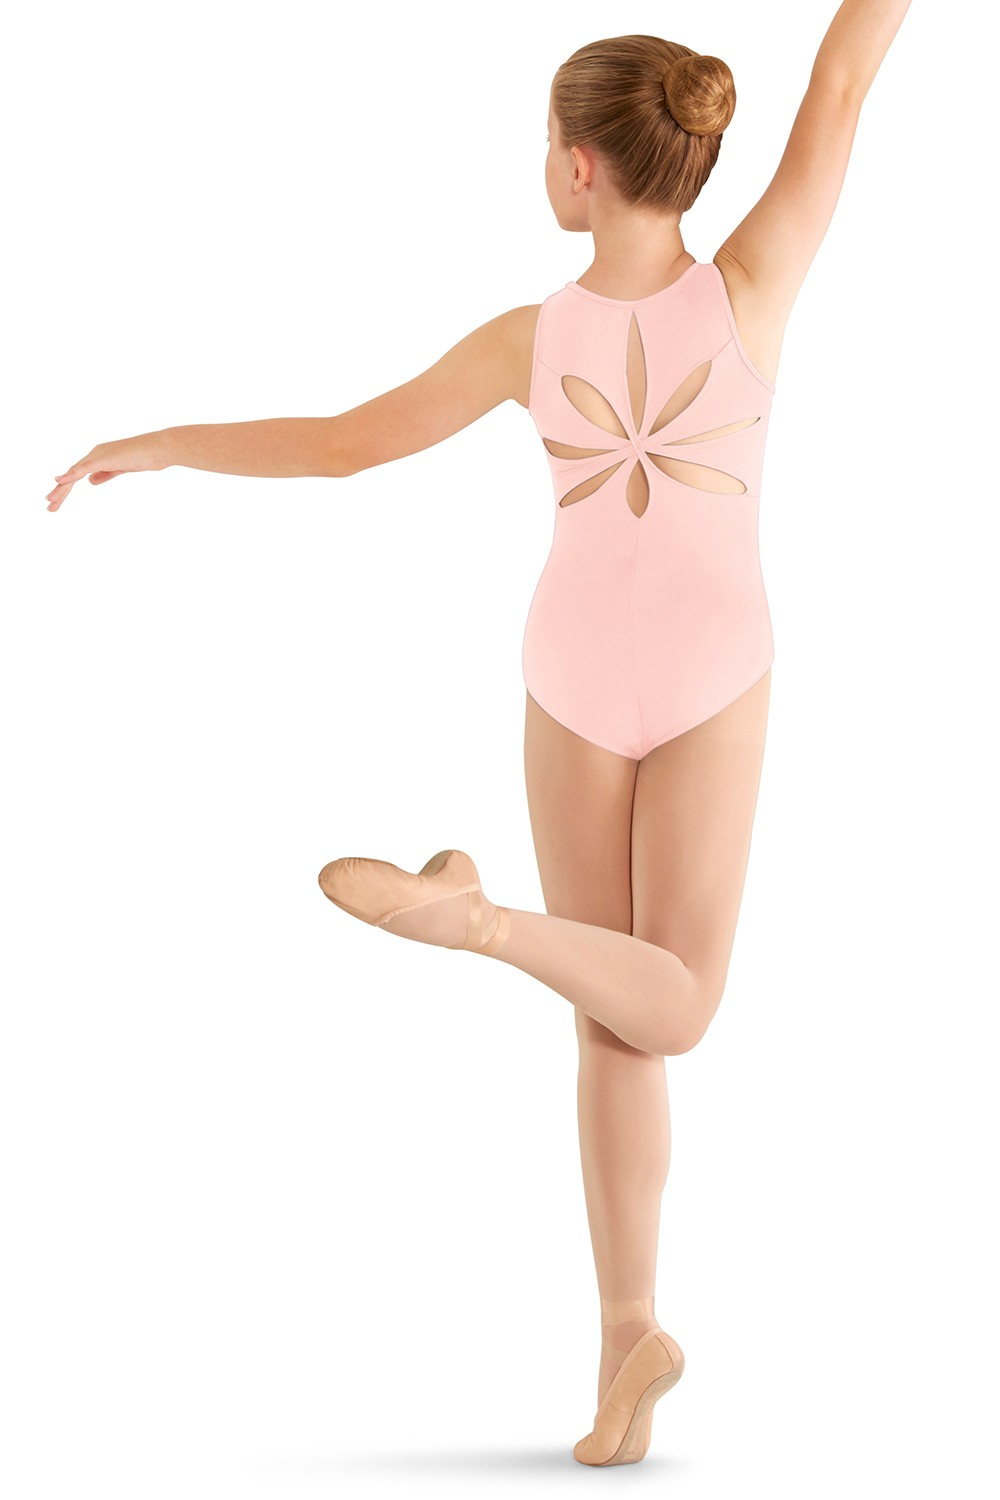 Justaucorps Sans Manches -  Détails Floraux Children's Dance Leotards